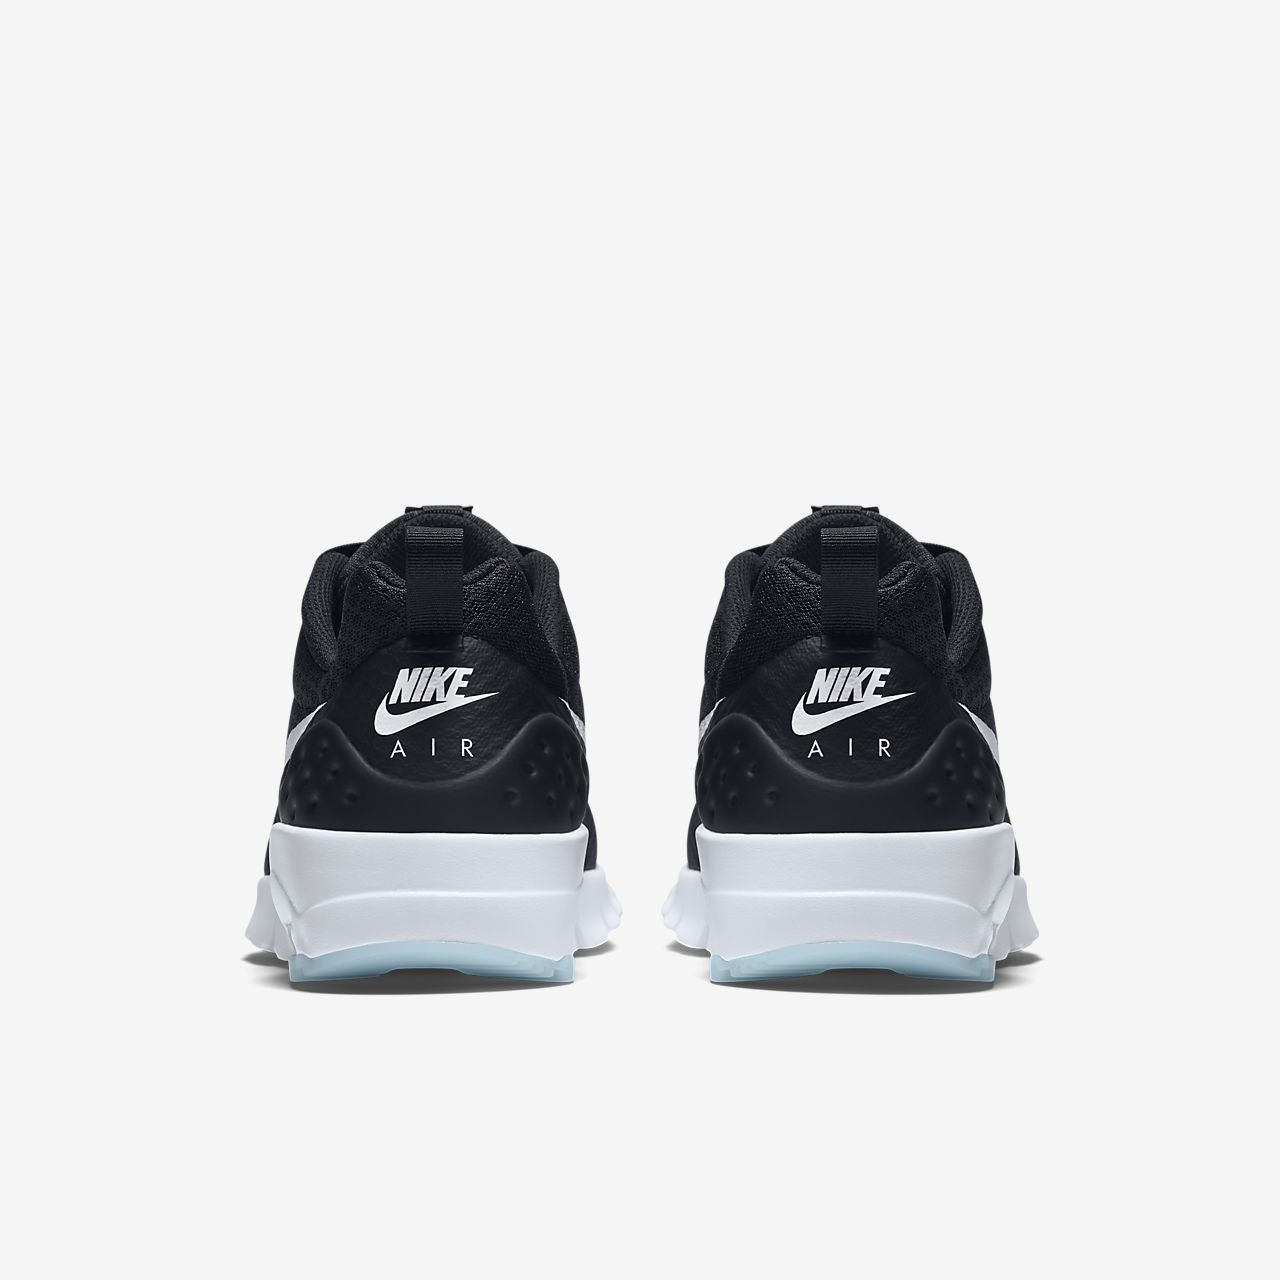 ca383c9998 Nike Air Max Motion Low Men's Shoe. Nike.com GB